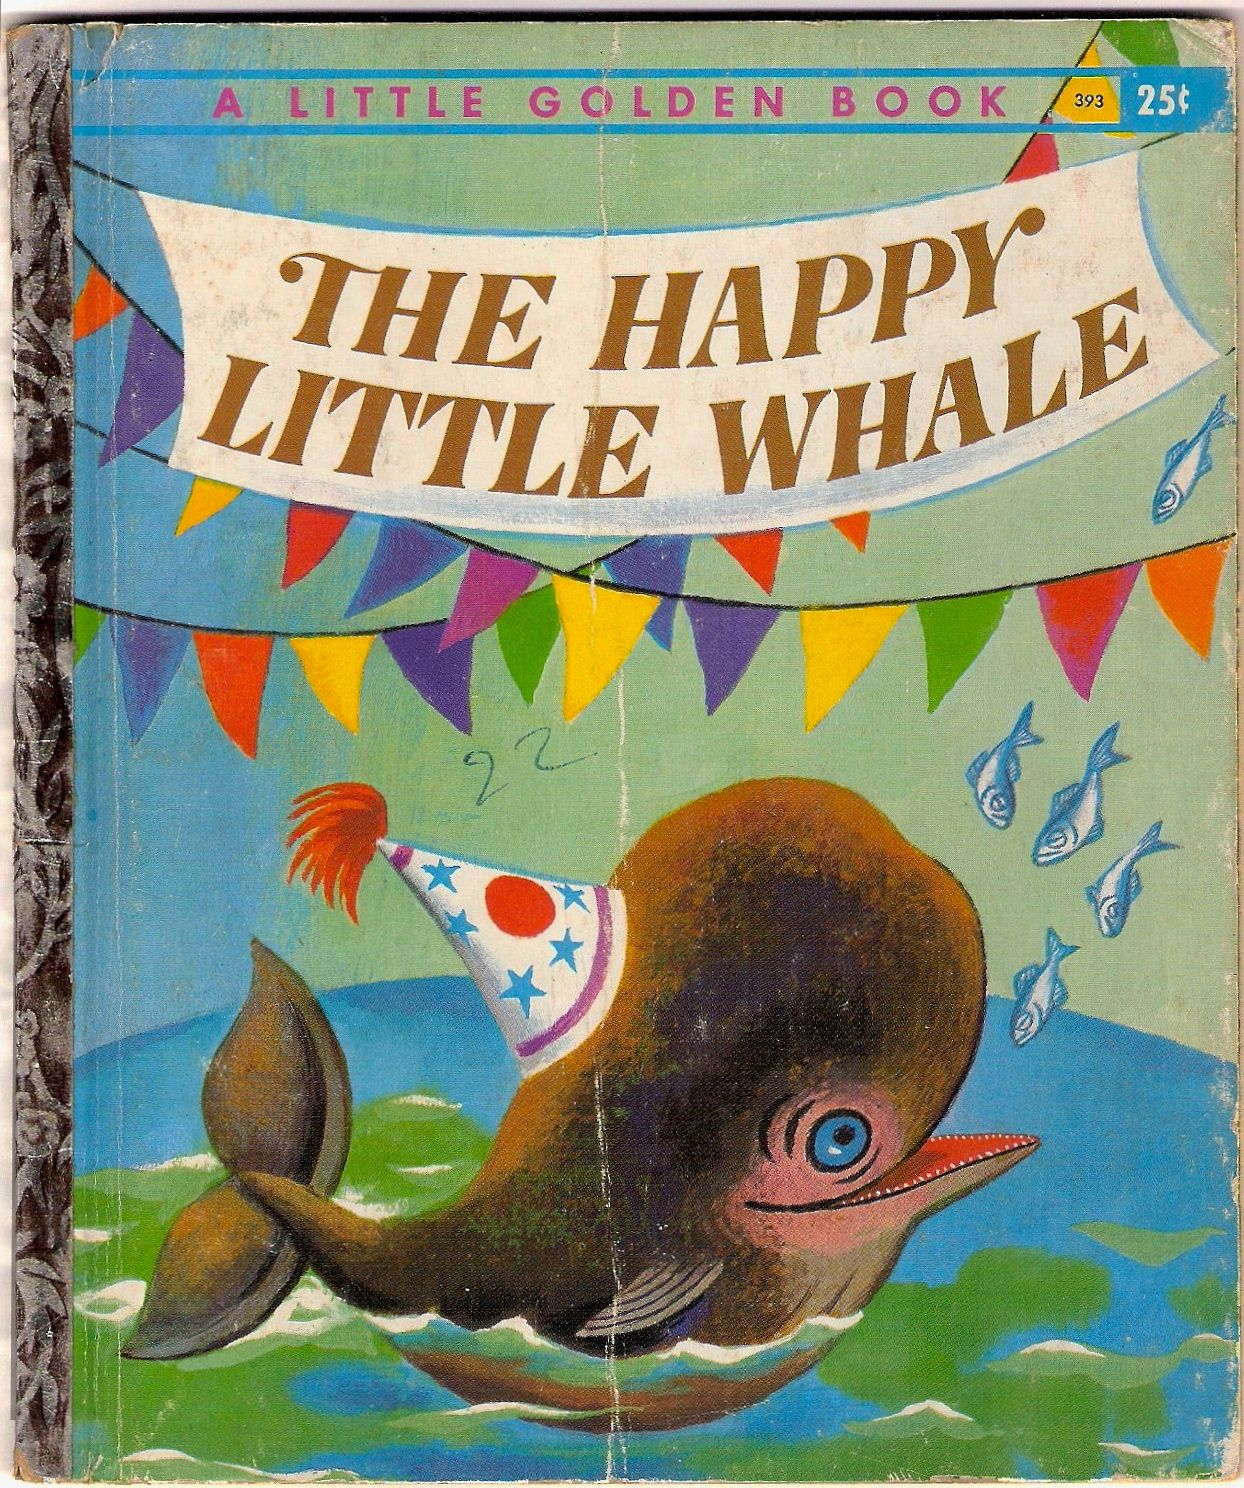 Be Happy Libro The Happy Little Whale Vintage Little Golden Book